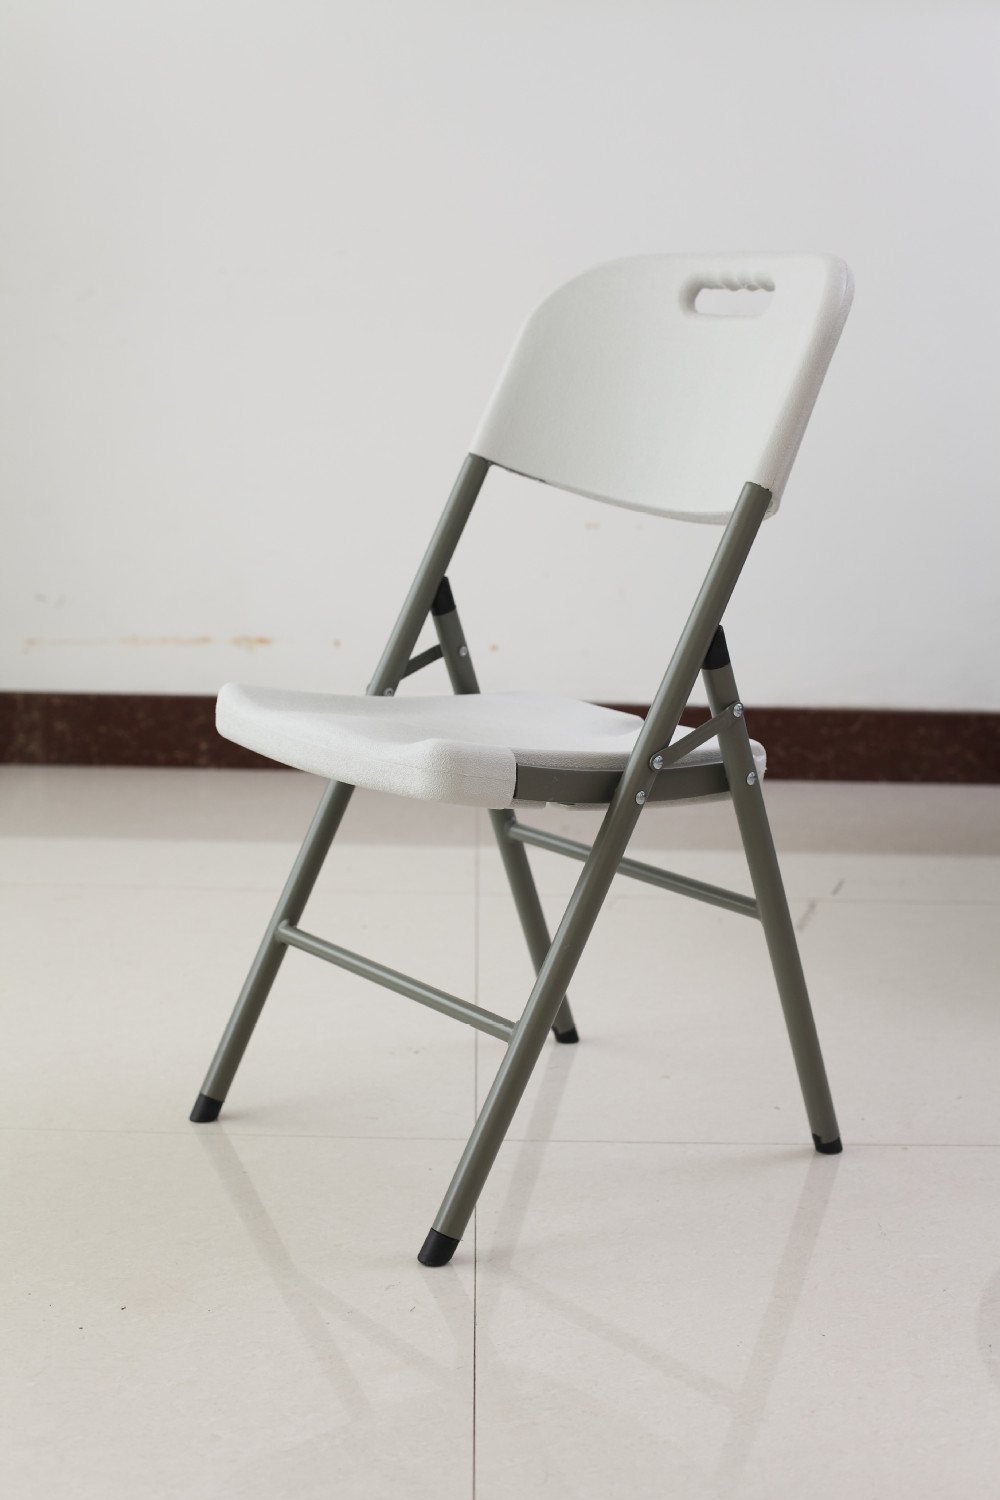 plastic folding chairsin Folding Chairs from Furniture on